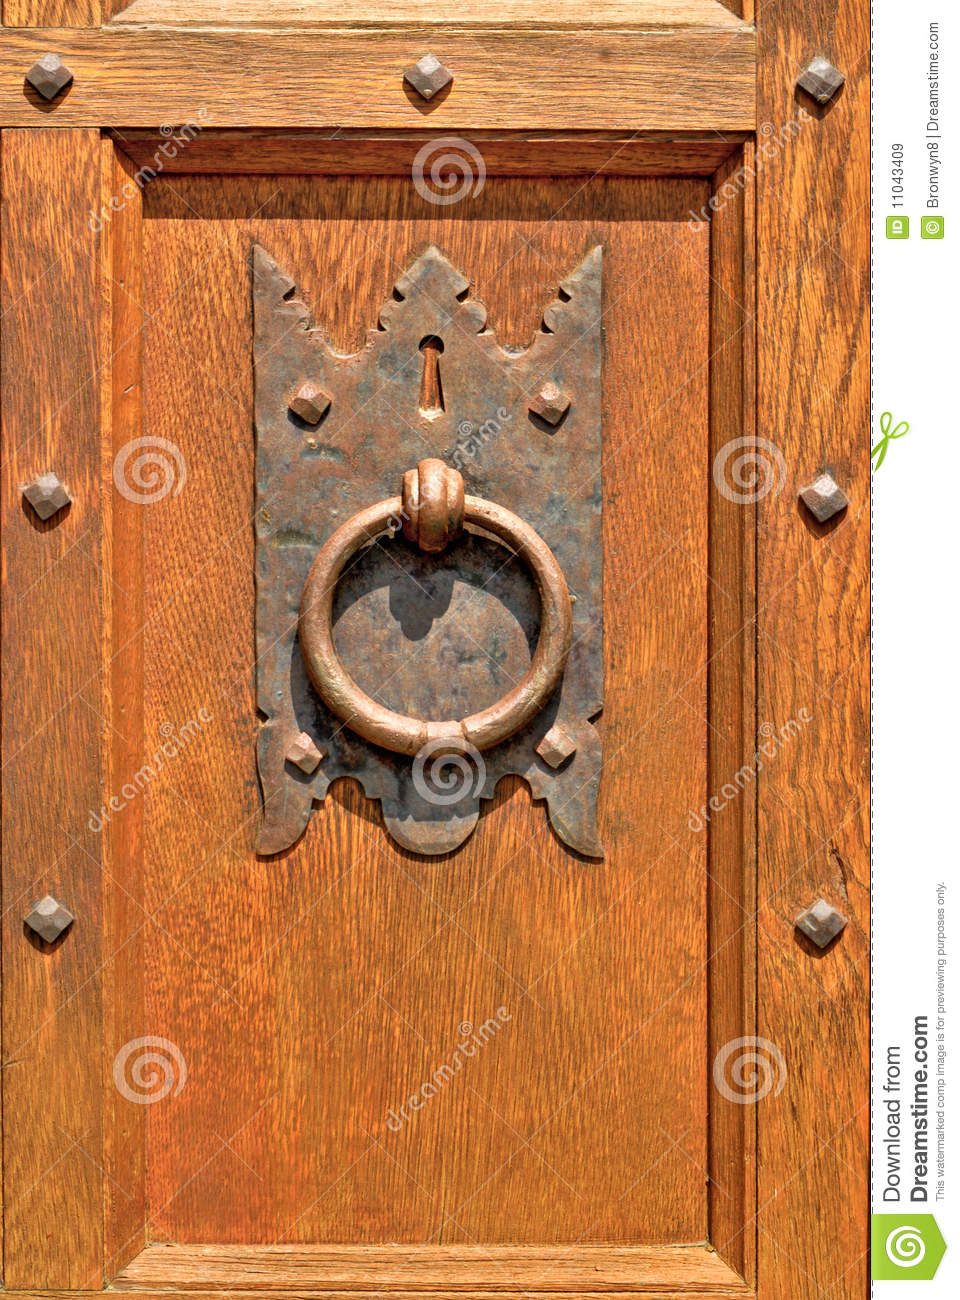 old fashioned door knocker royalty free stock images